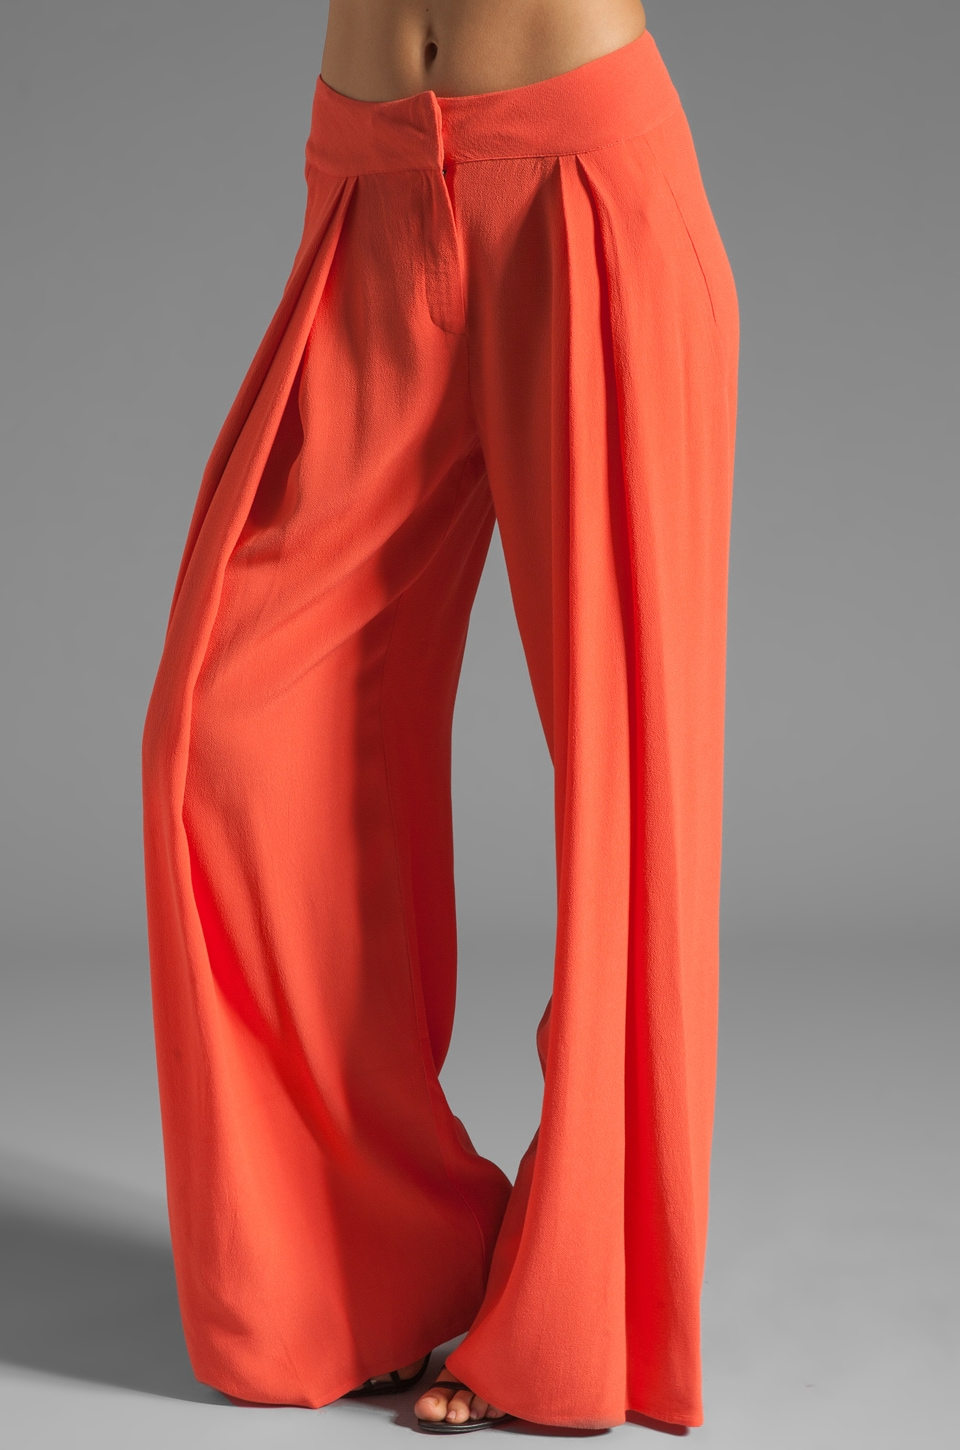 See By Chloe High Waisted Wide Leg Pant in Orange